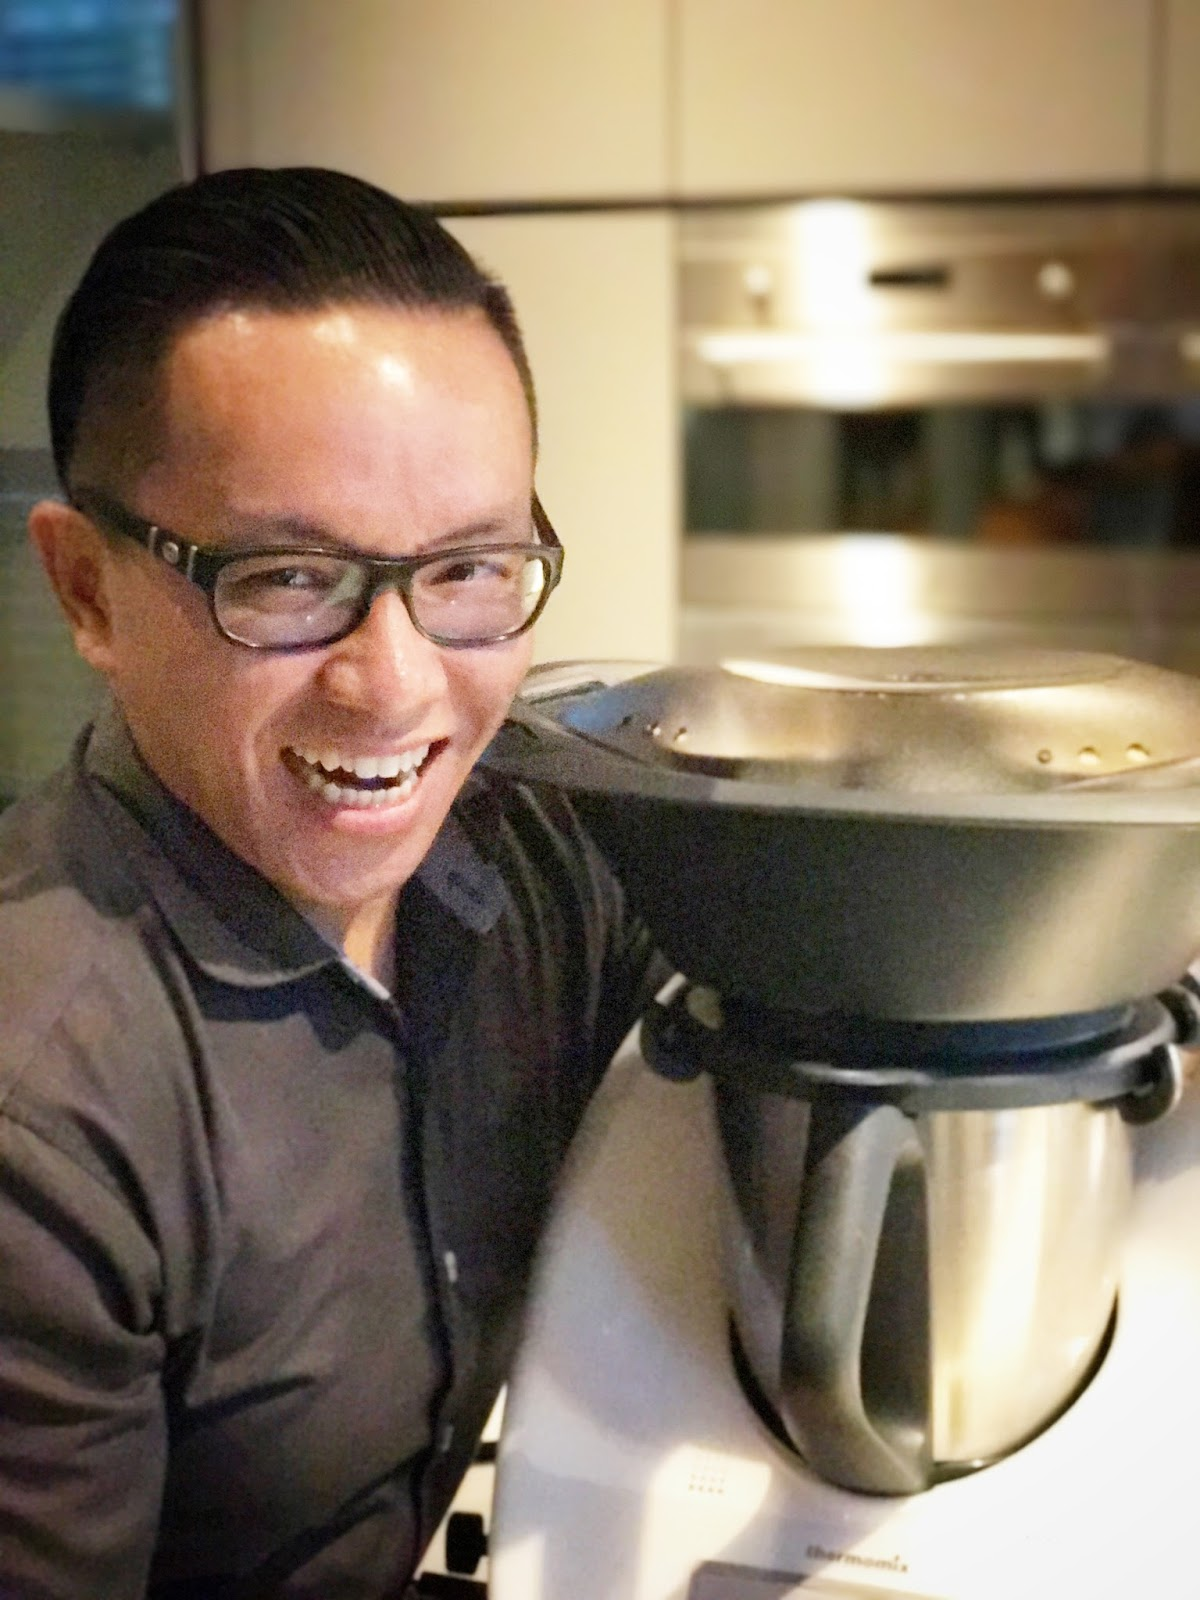 Cooking With Olivia, Olivia Tan, JC Lim, Thermomix Malaysia, Thermomix TM5, Vorwerk, cooking, Eat Healthy, healthy cooking, world's smallest kitchen, culinary,